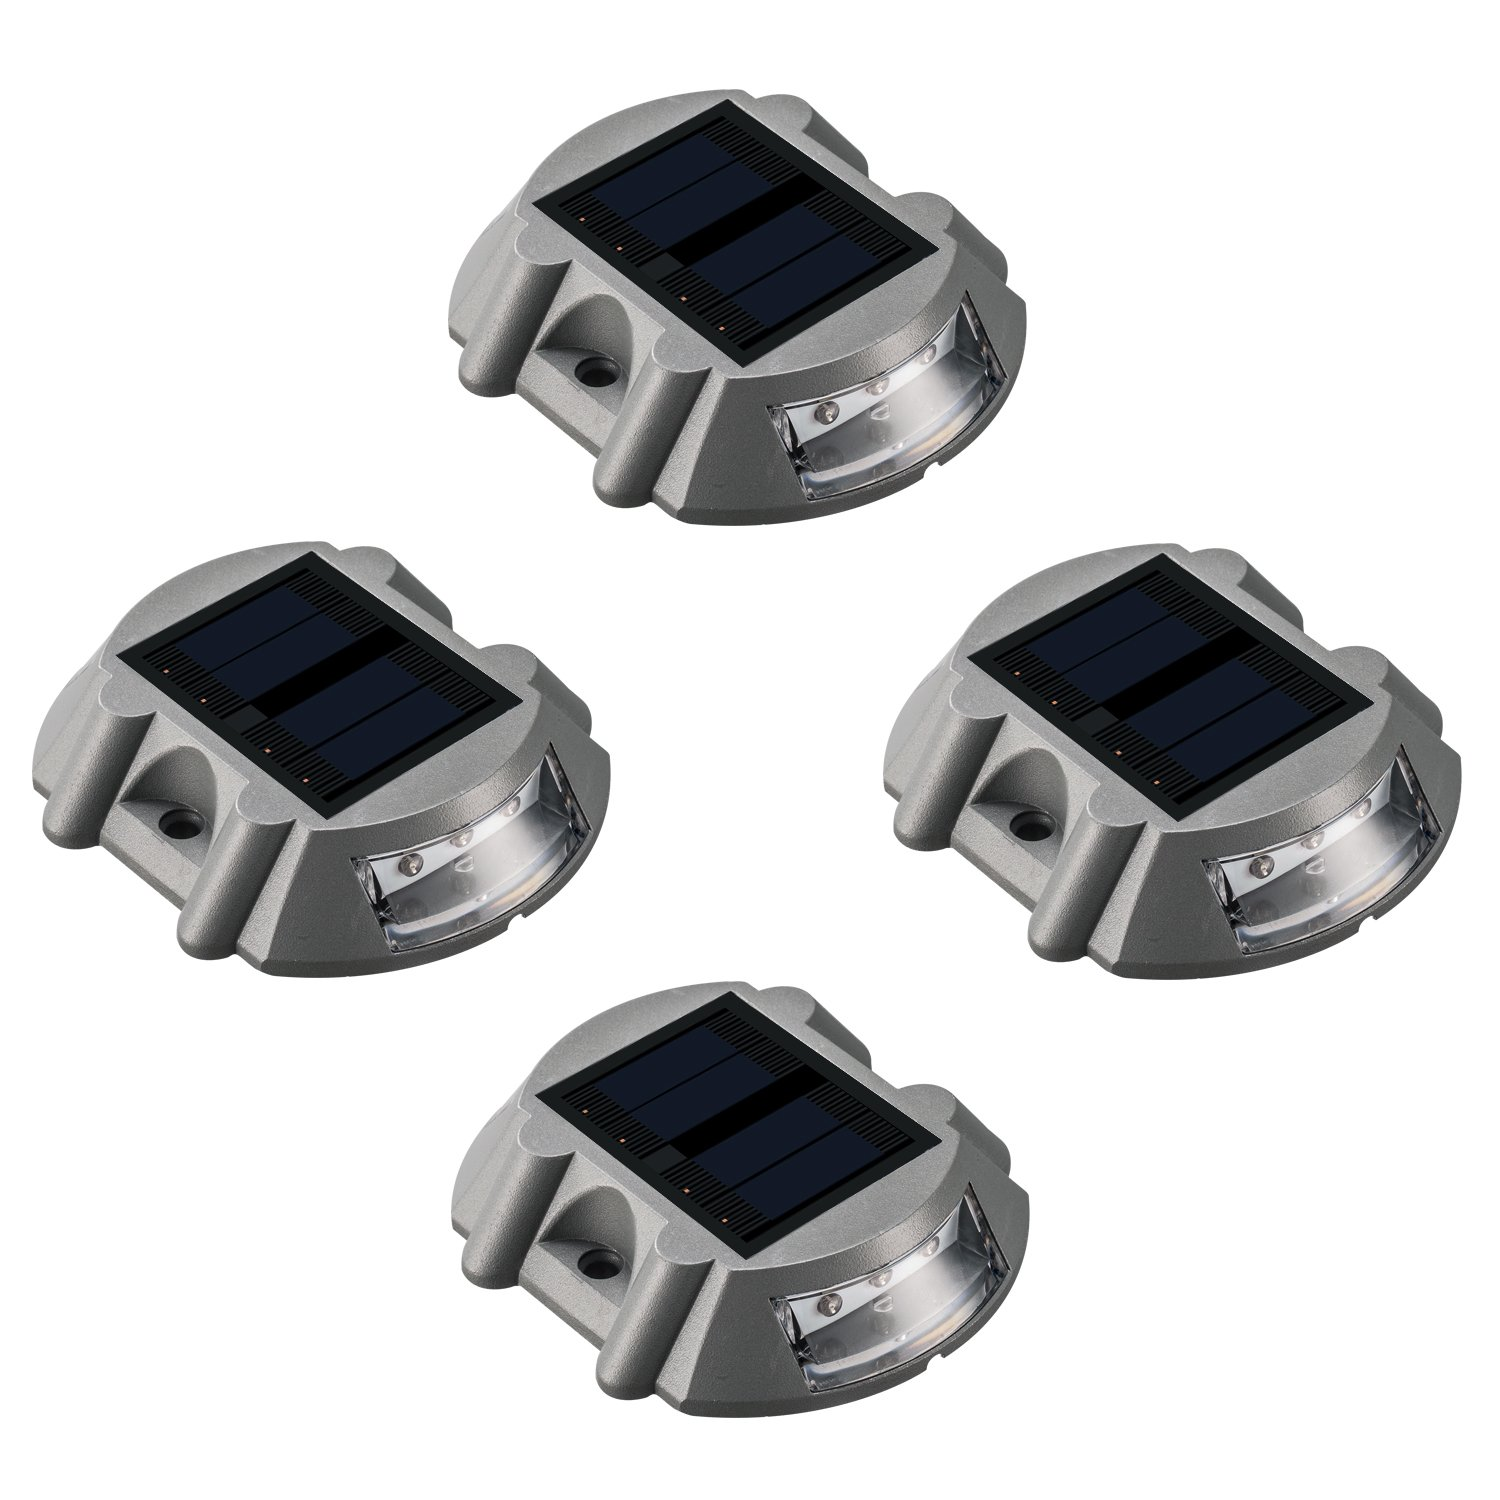 Solar Deck Lights LED Marker - Sunwind 4 Pack Road Stud Lights Die Casting Aluminum Solar Powered Outdoor LED Pathway Road Driveway Lights for Garden Path Stair Fence Driveway Road Lighting (Blue)